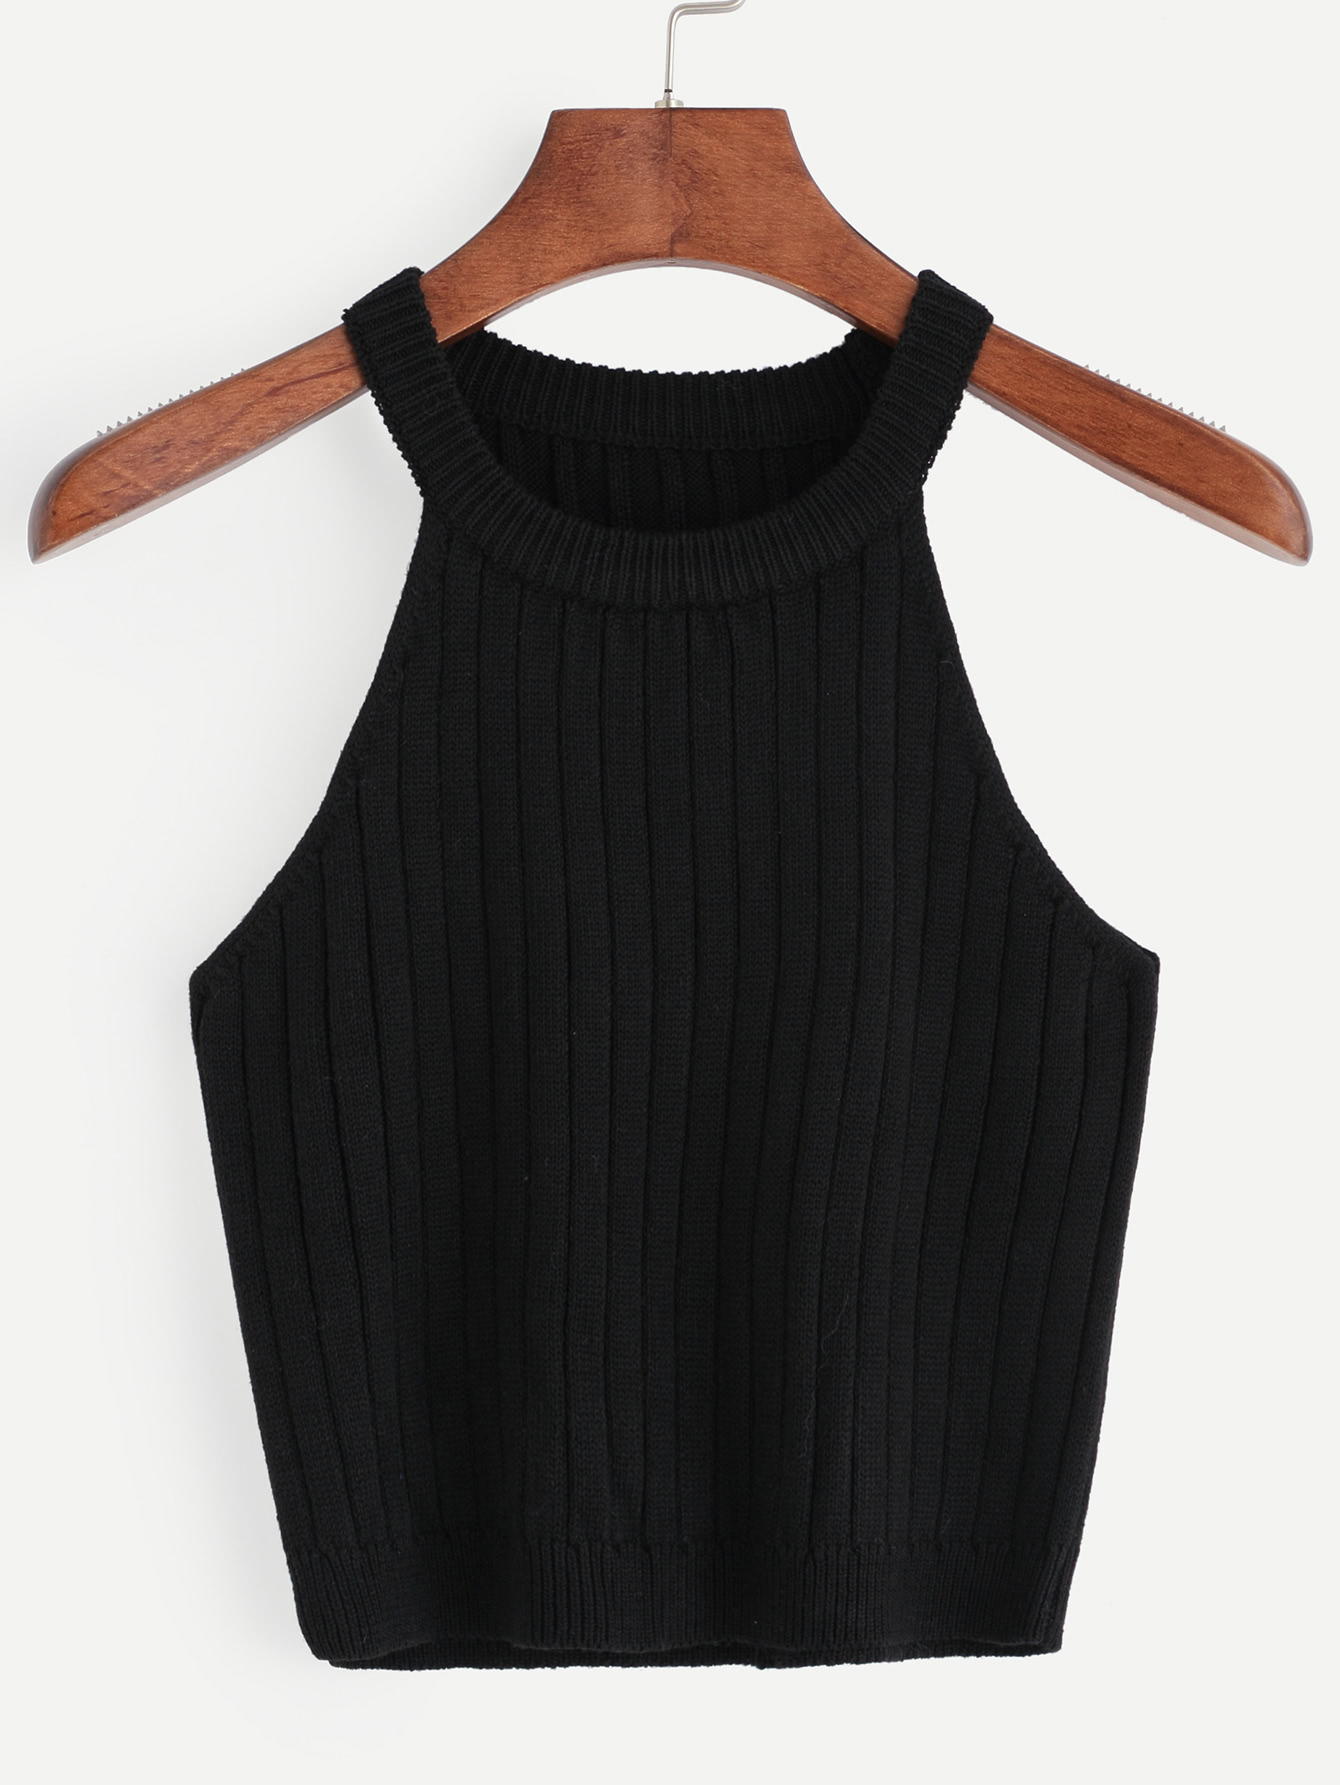 Knitted Rib Tank Top vest160627526